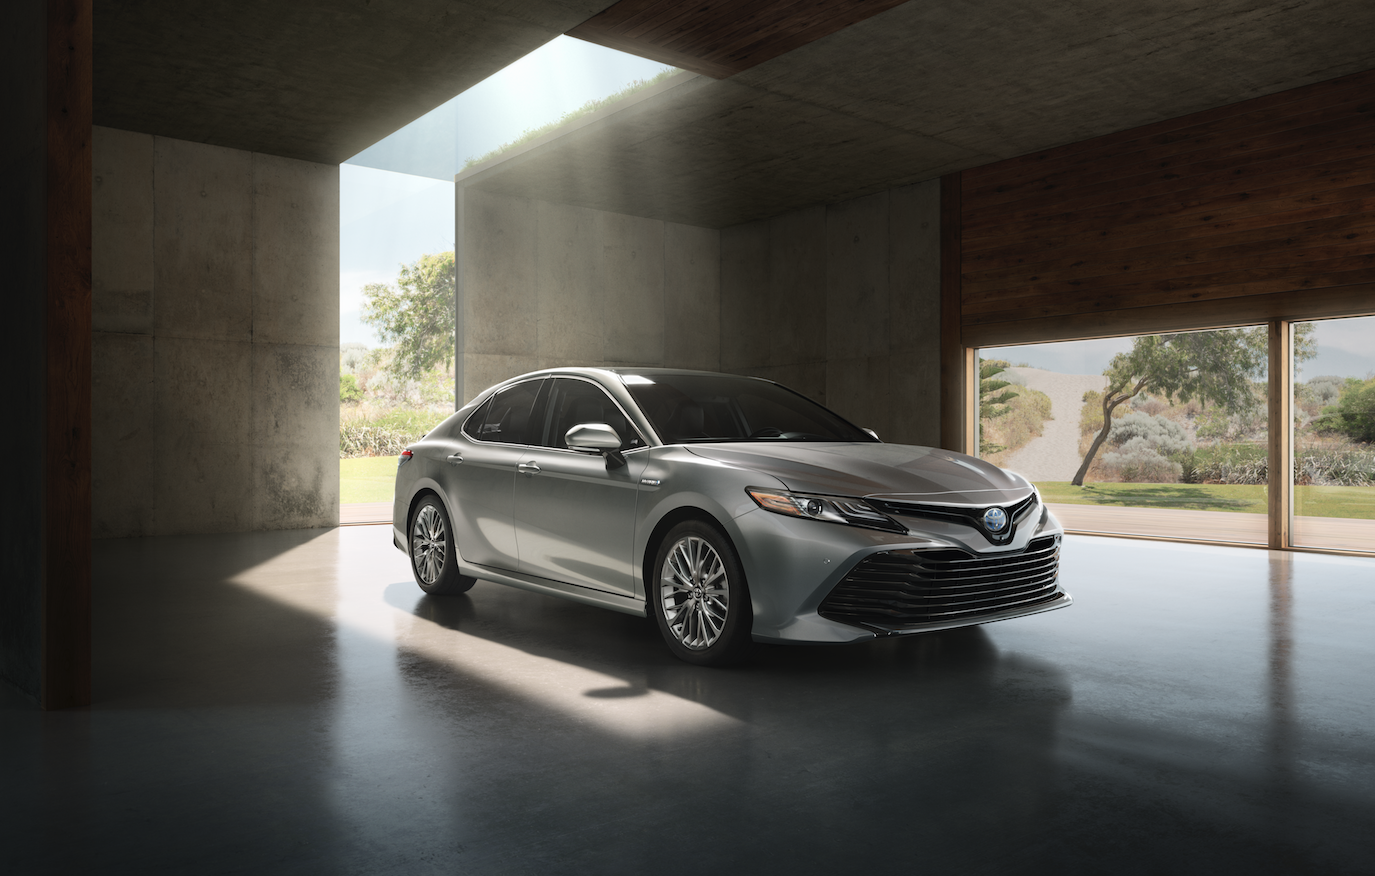 All New Camry 2018 Interior Toyota Thailand Introducing The In Addition To A More Modern Look Has Three Colors Wind Chill Pearl Brownstone And Galactic Aqua Mica